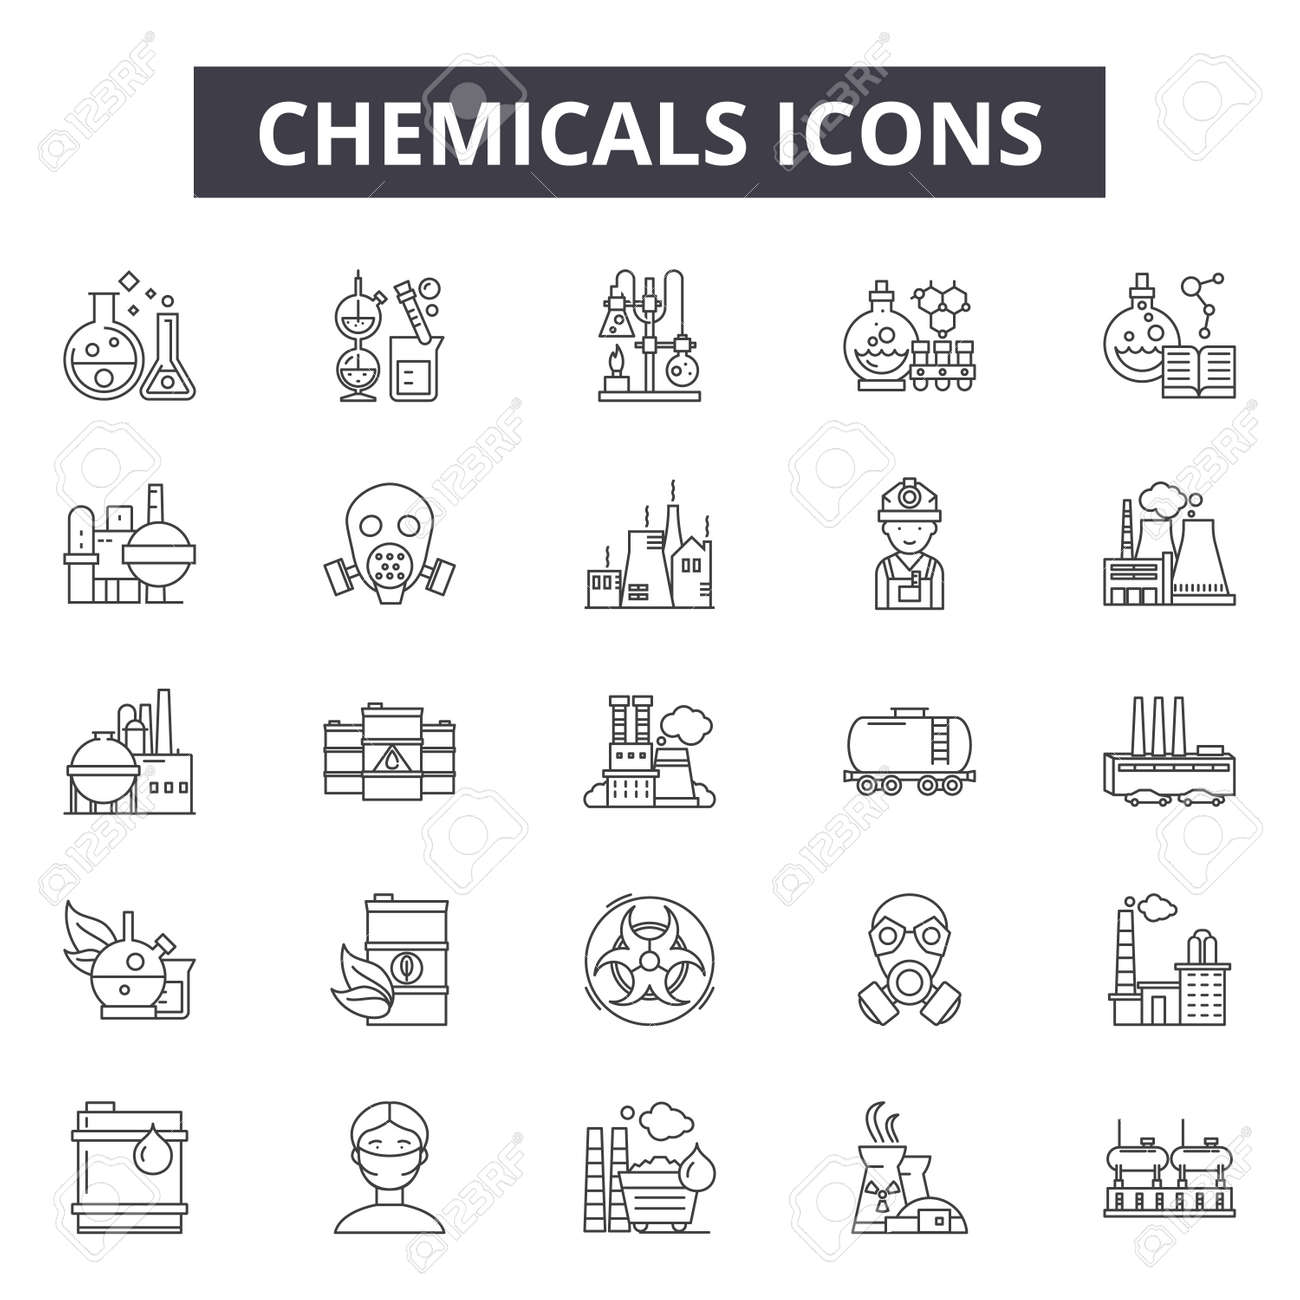 Chemicals line icons for web and mobile. Editable stroke signs. Chemicals outline concept illustrations - 119391061